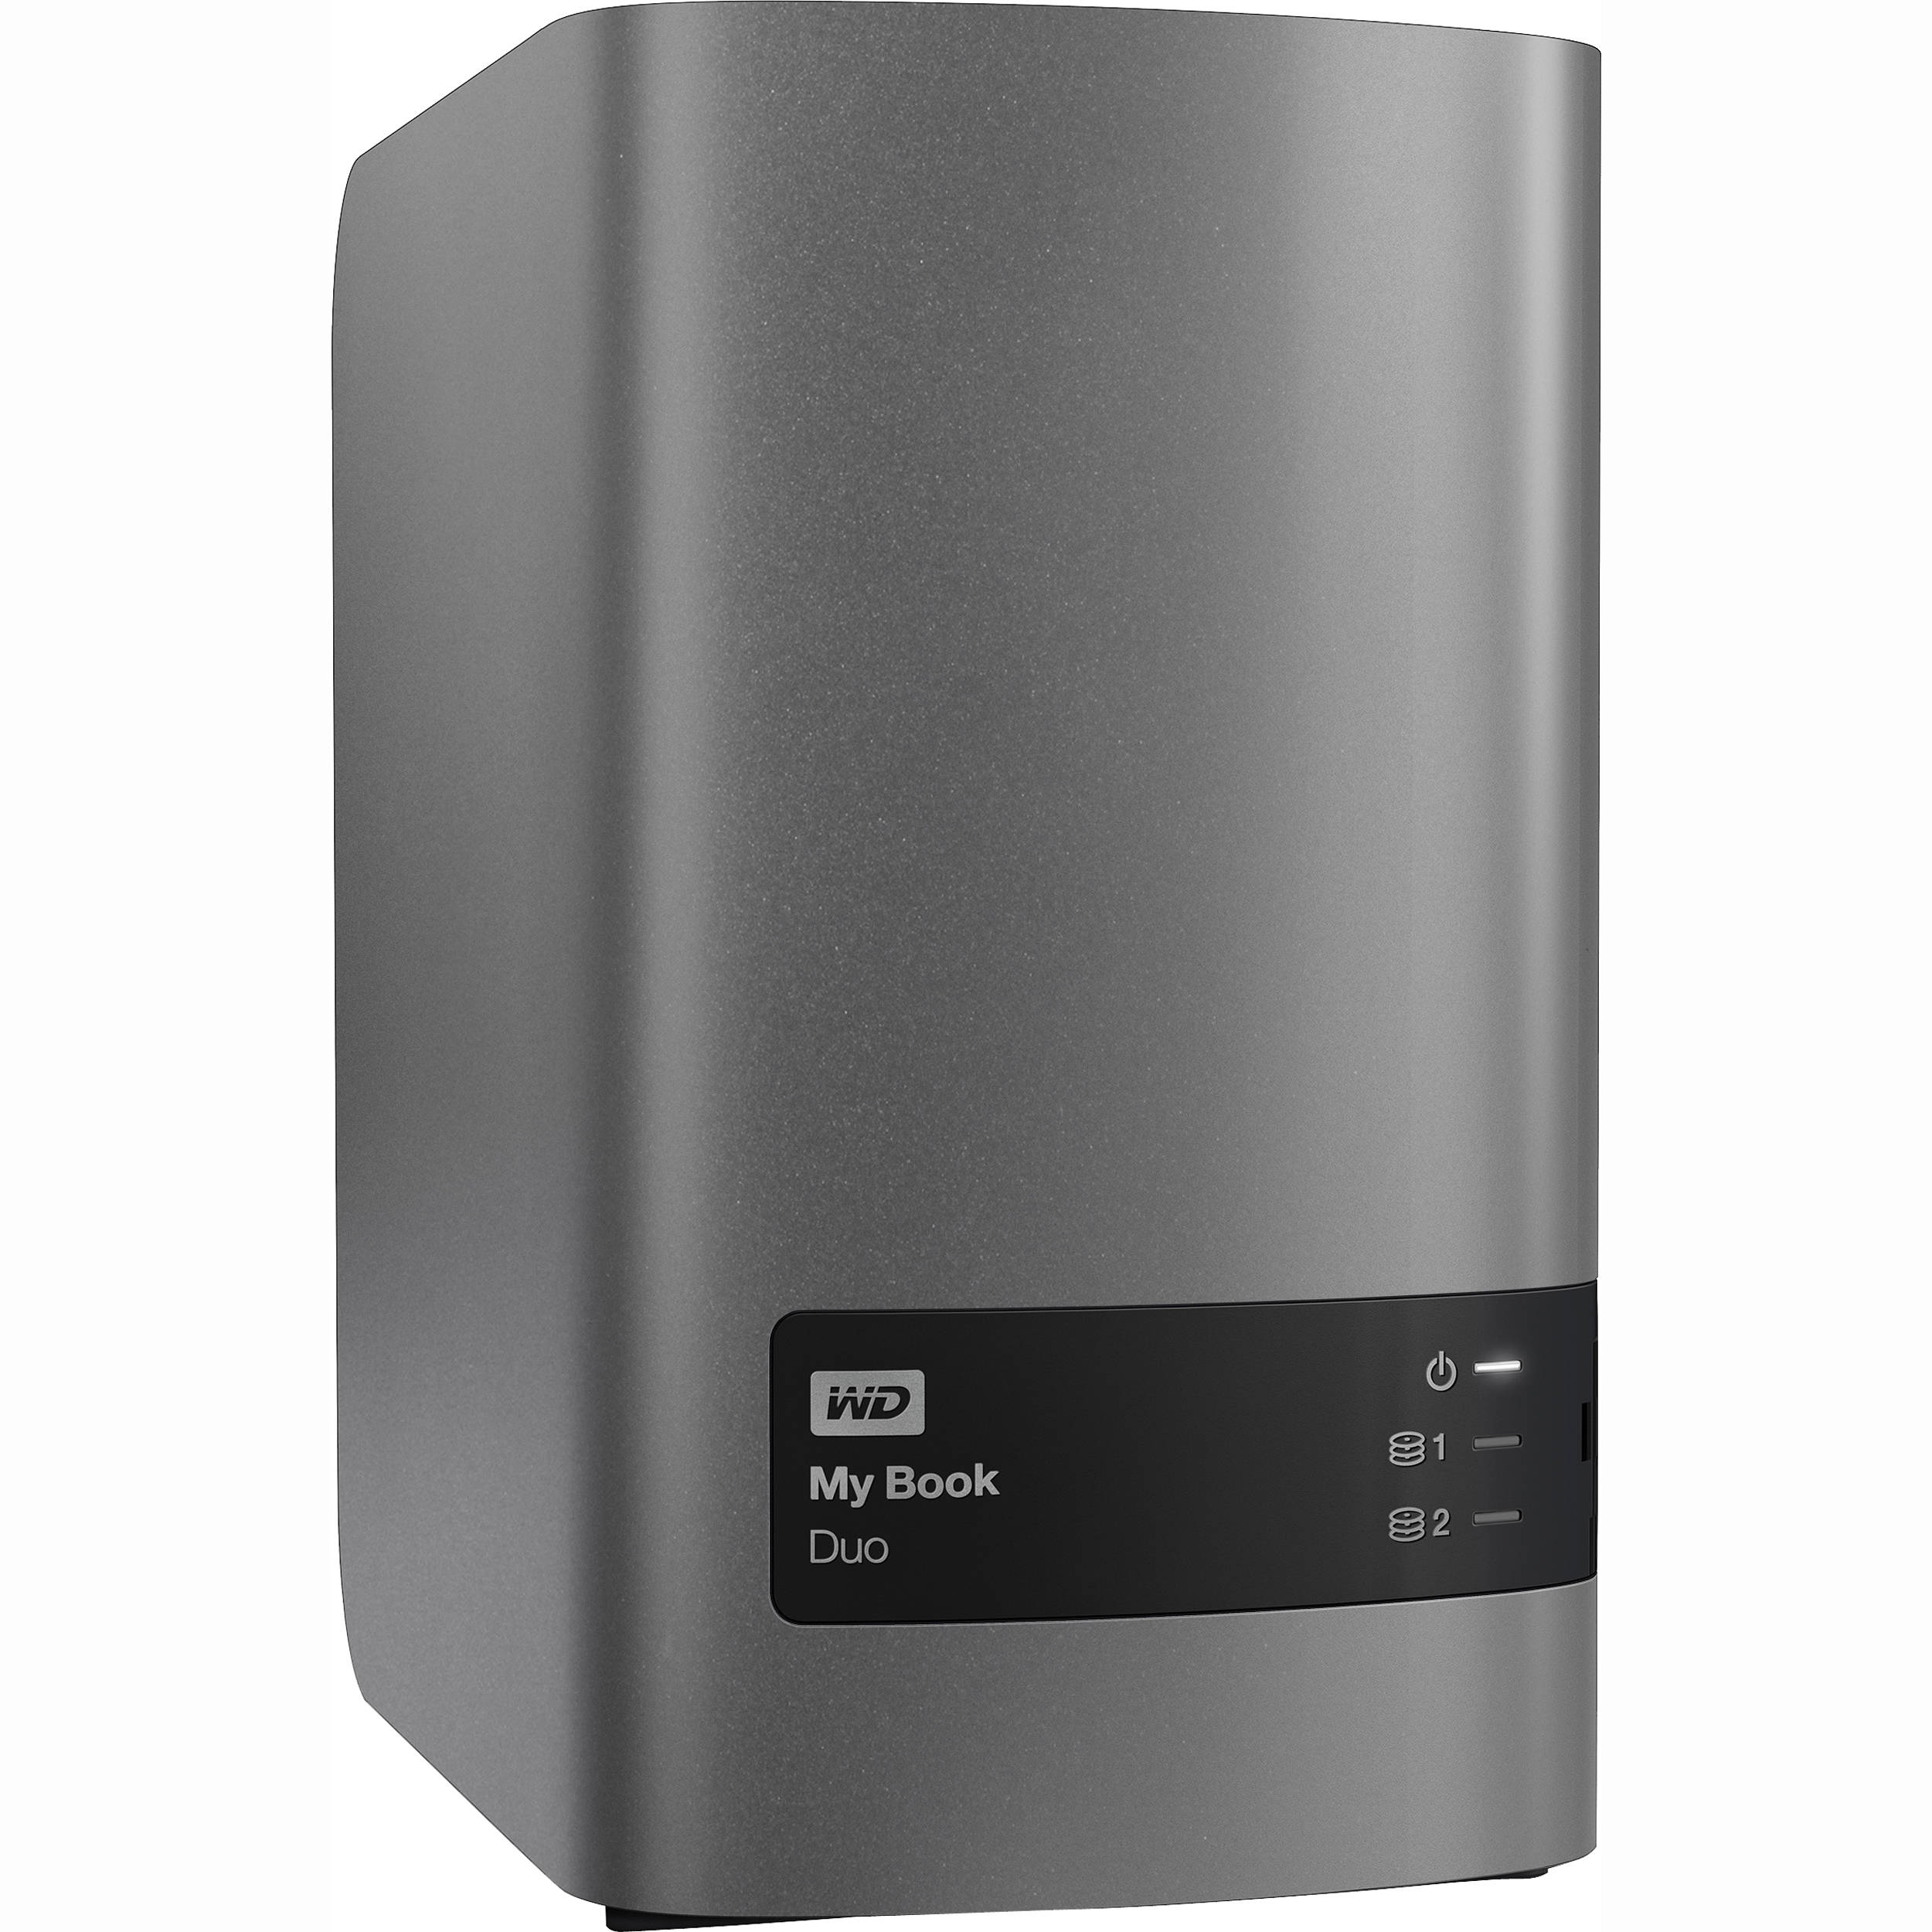 Raid 0 Data Recovery from Western Digital MyBook